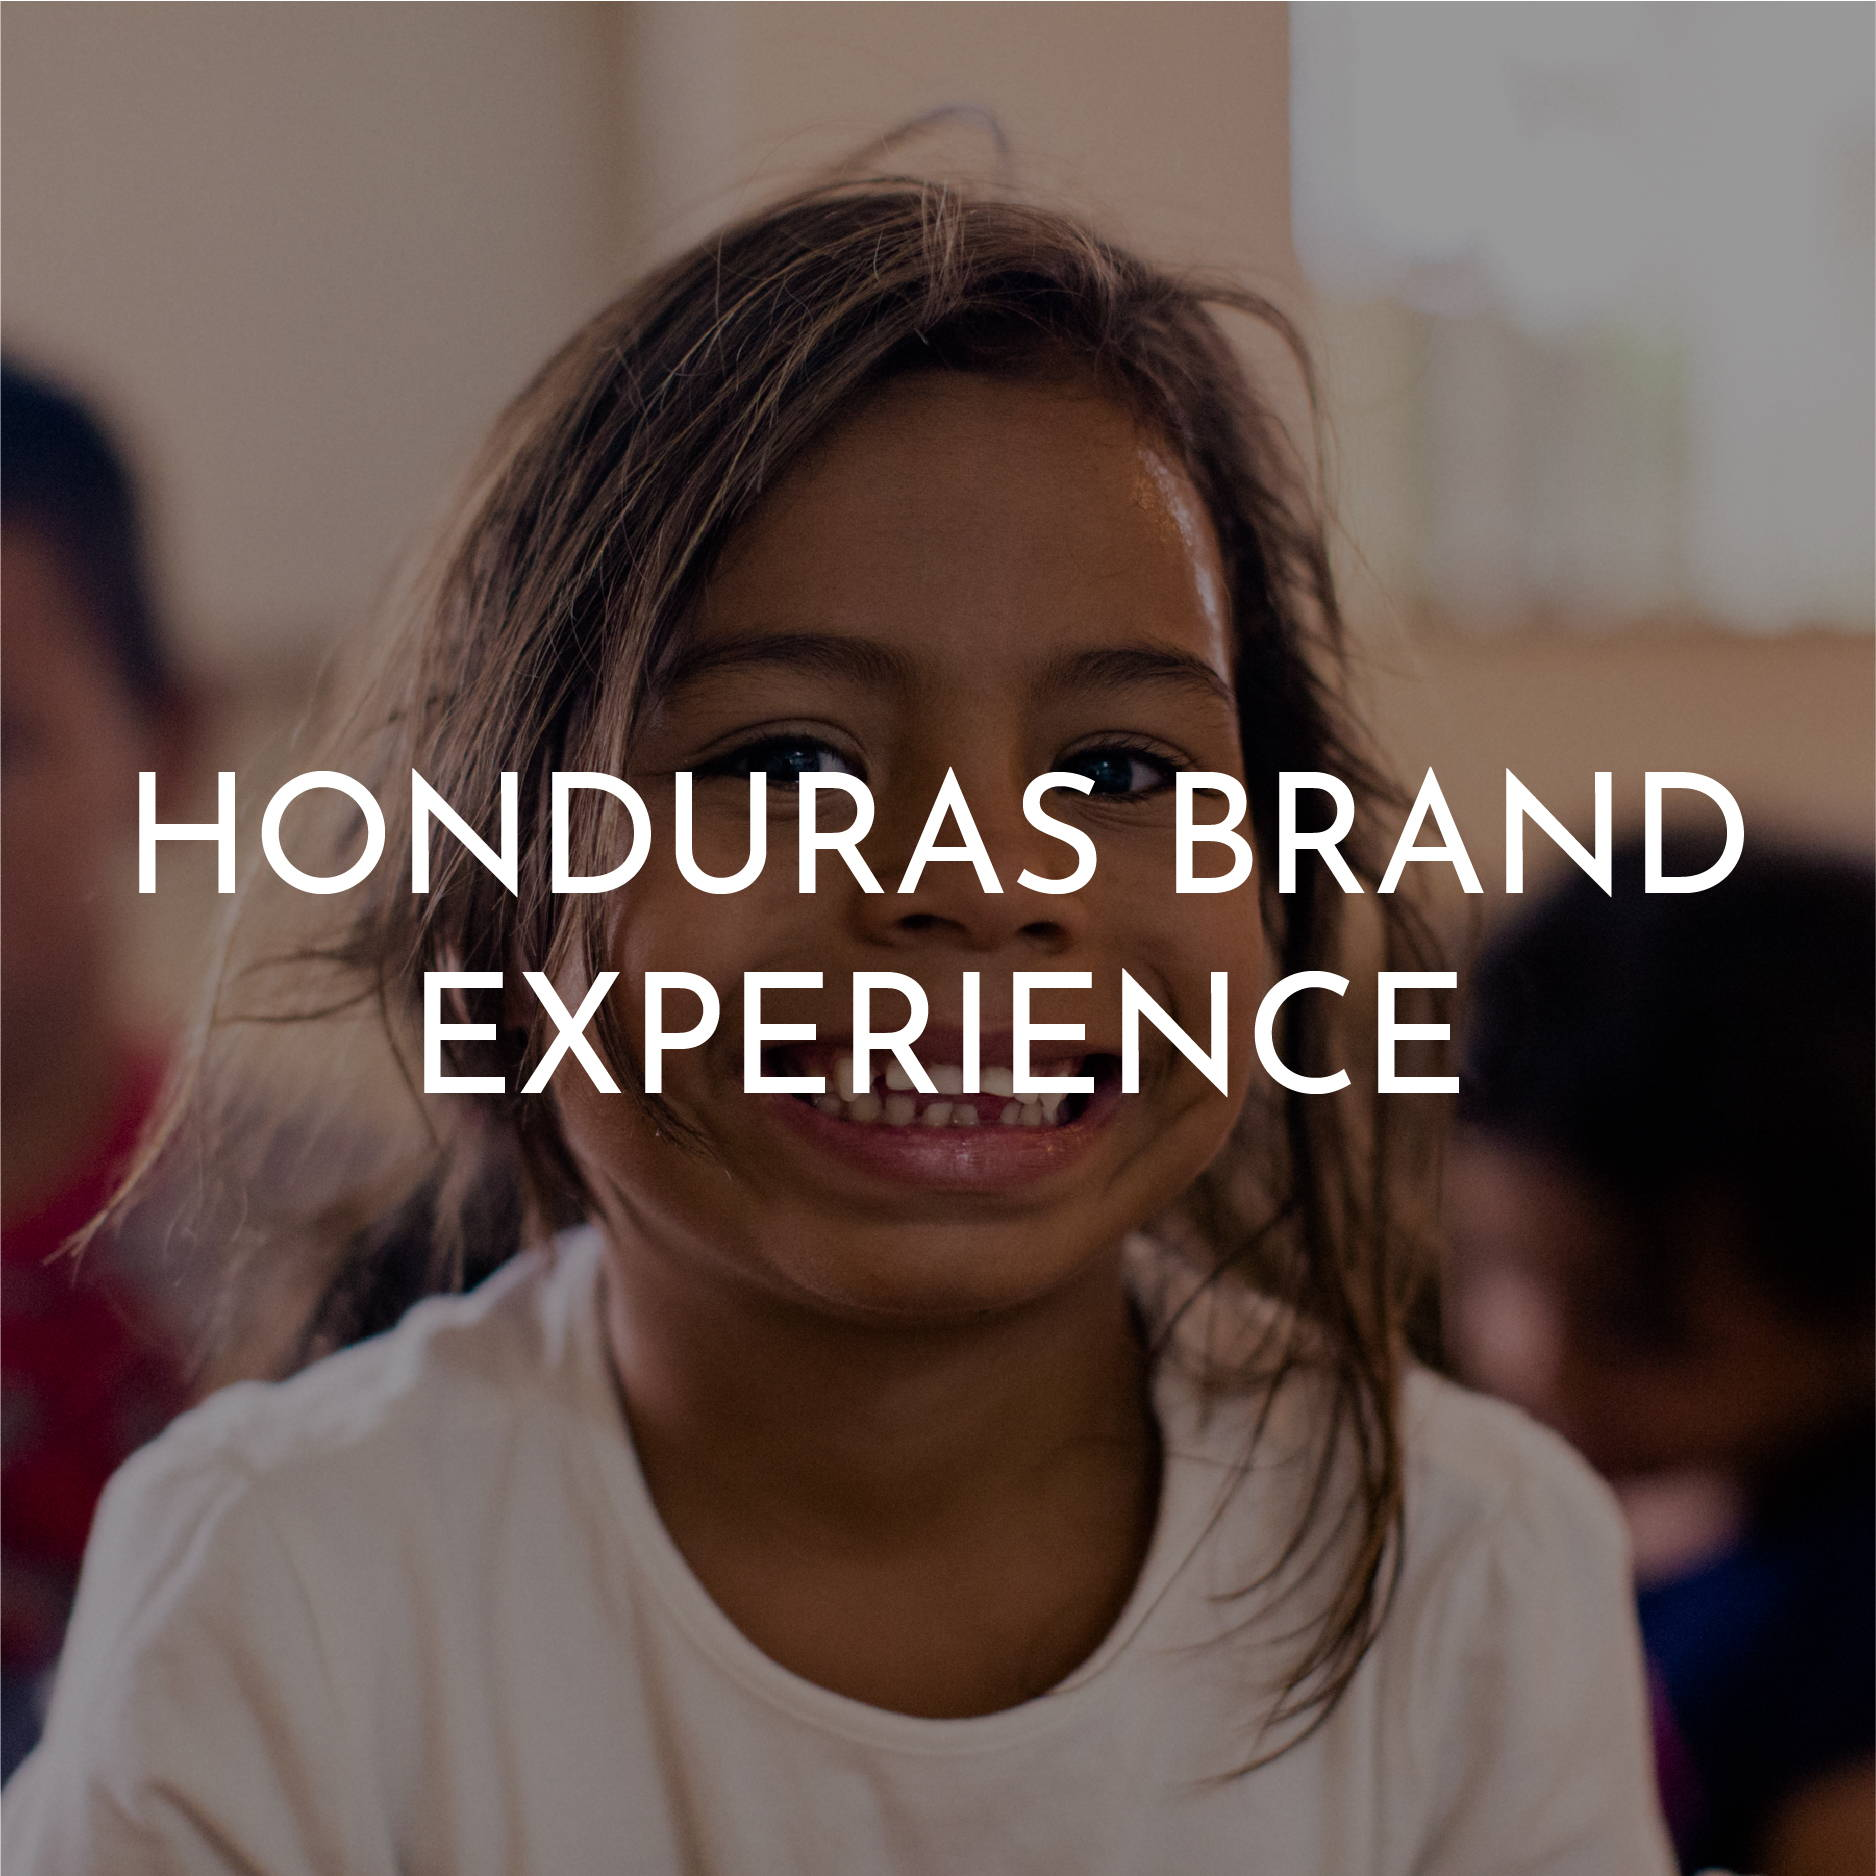 """Honduras Brand Experience"" Is written on top of a smiling Honduran girl wearing a white t-shirt"